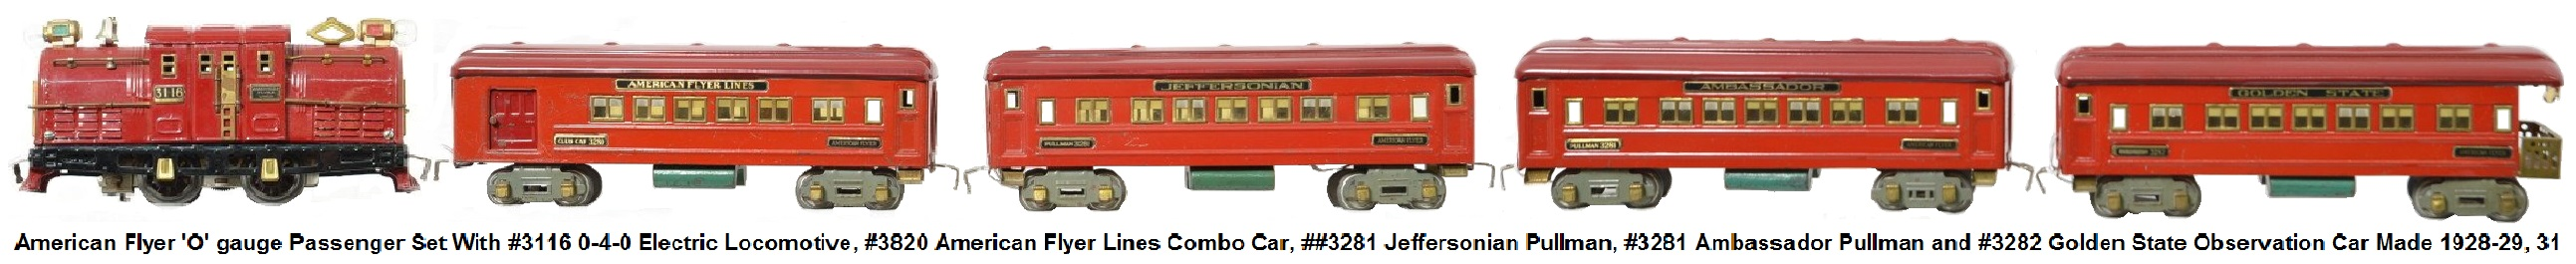 American Flyer 'O' gauge Passenger set with #3116 0-4-0 electric Outline Loco, #3280 American Flyer Lines Club Car, #3281 Jeffersonian Pullman, #3281 Ambassador Pullman and #3282 Golden State Observation Car made 1928-29, 31